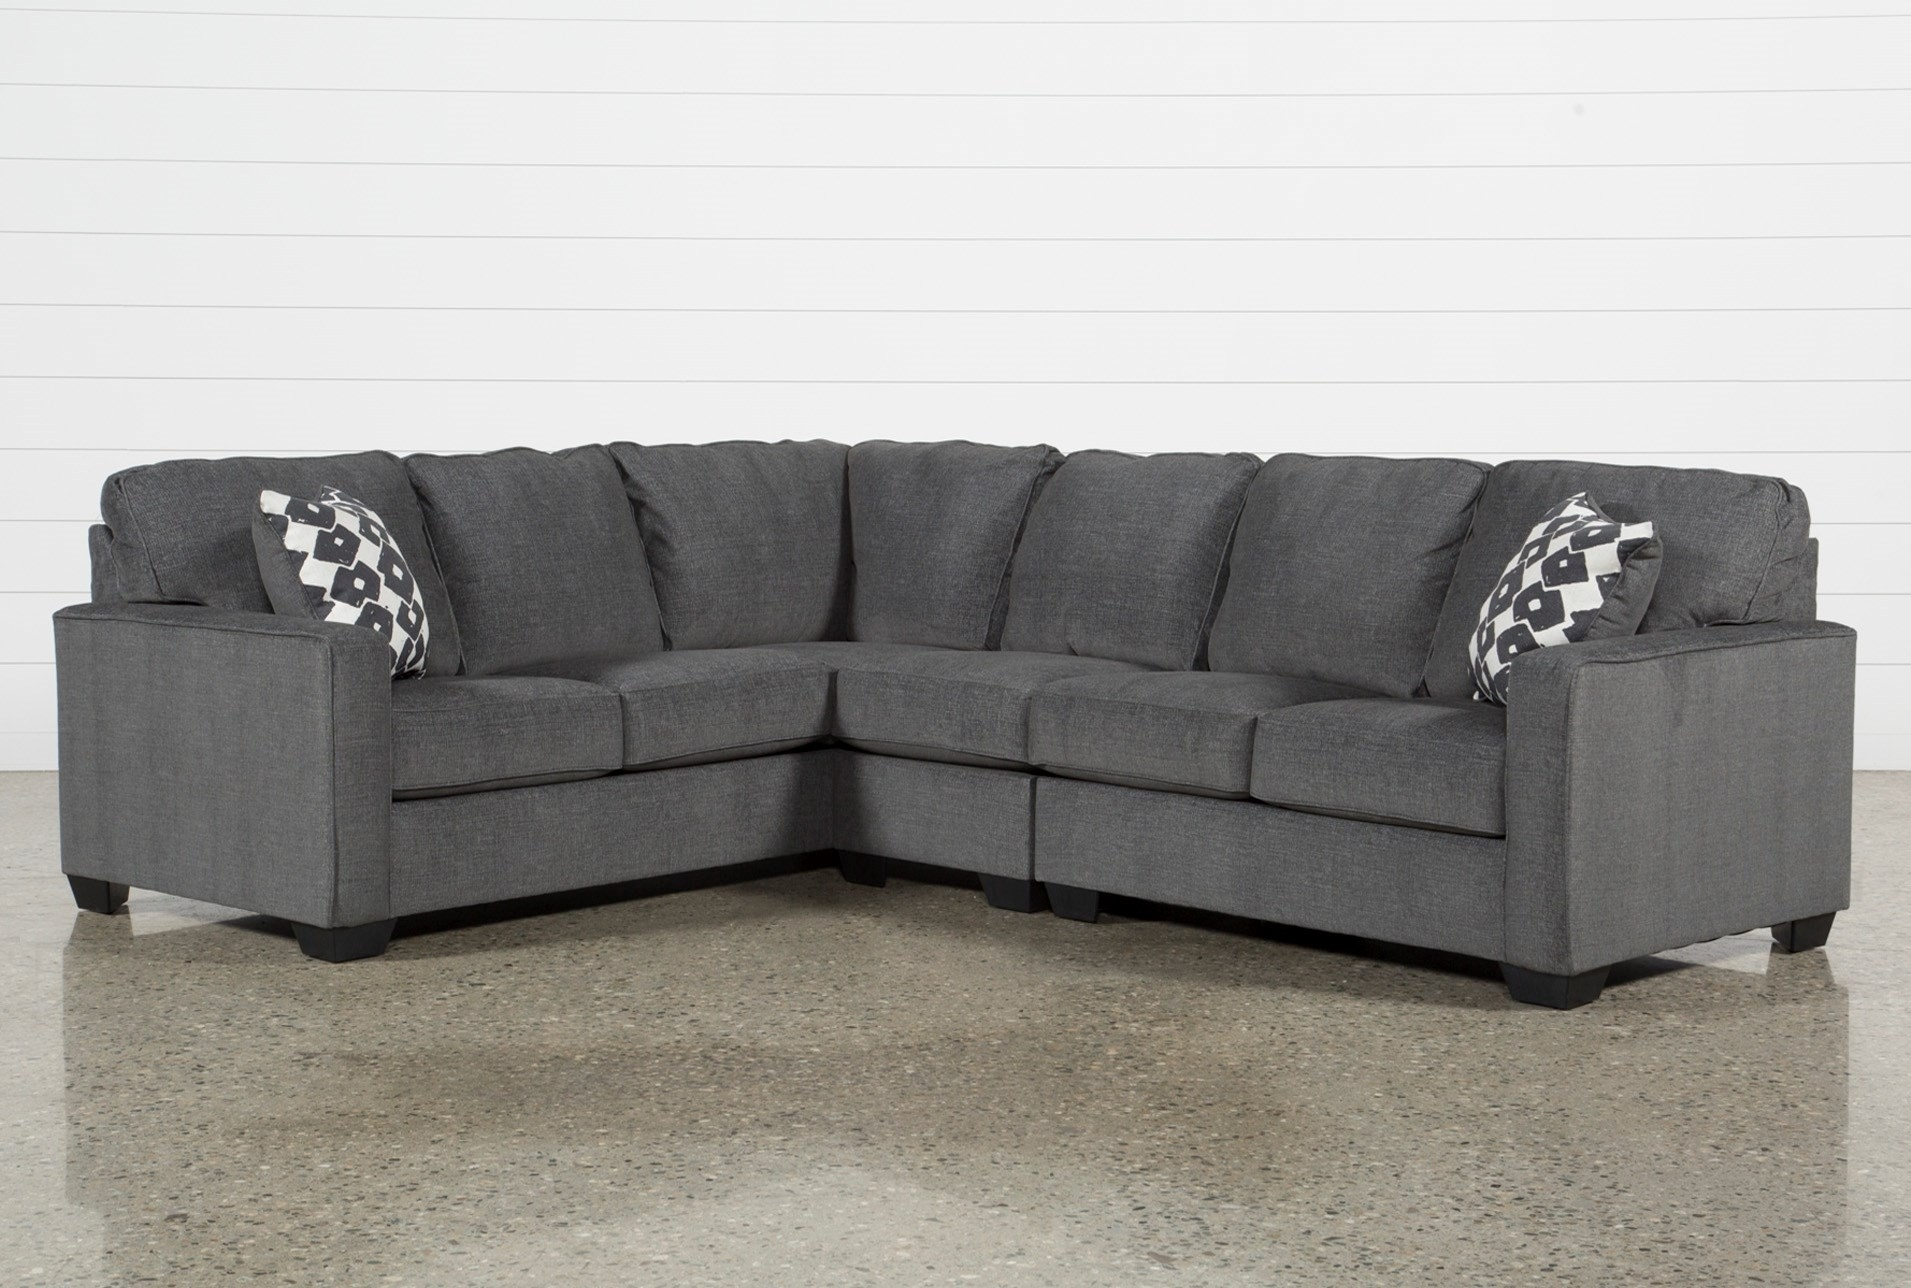 Raf Sectional Meyer 3 Piece W Chaise Living Spaces 87980 2 Jpg 1911 Regarding Meyer 3 Piece Sectionals With Laf Chaise (View 6 of 25)